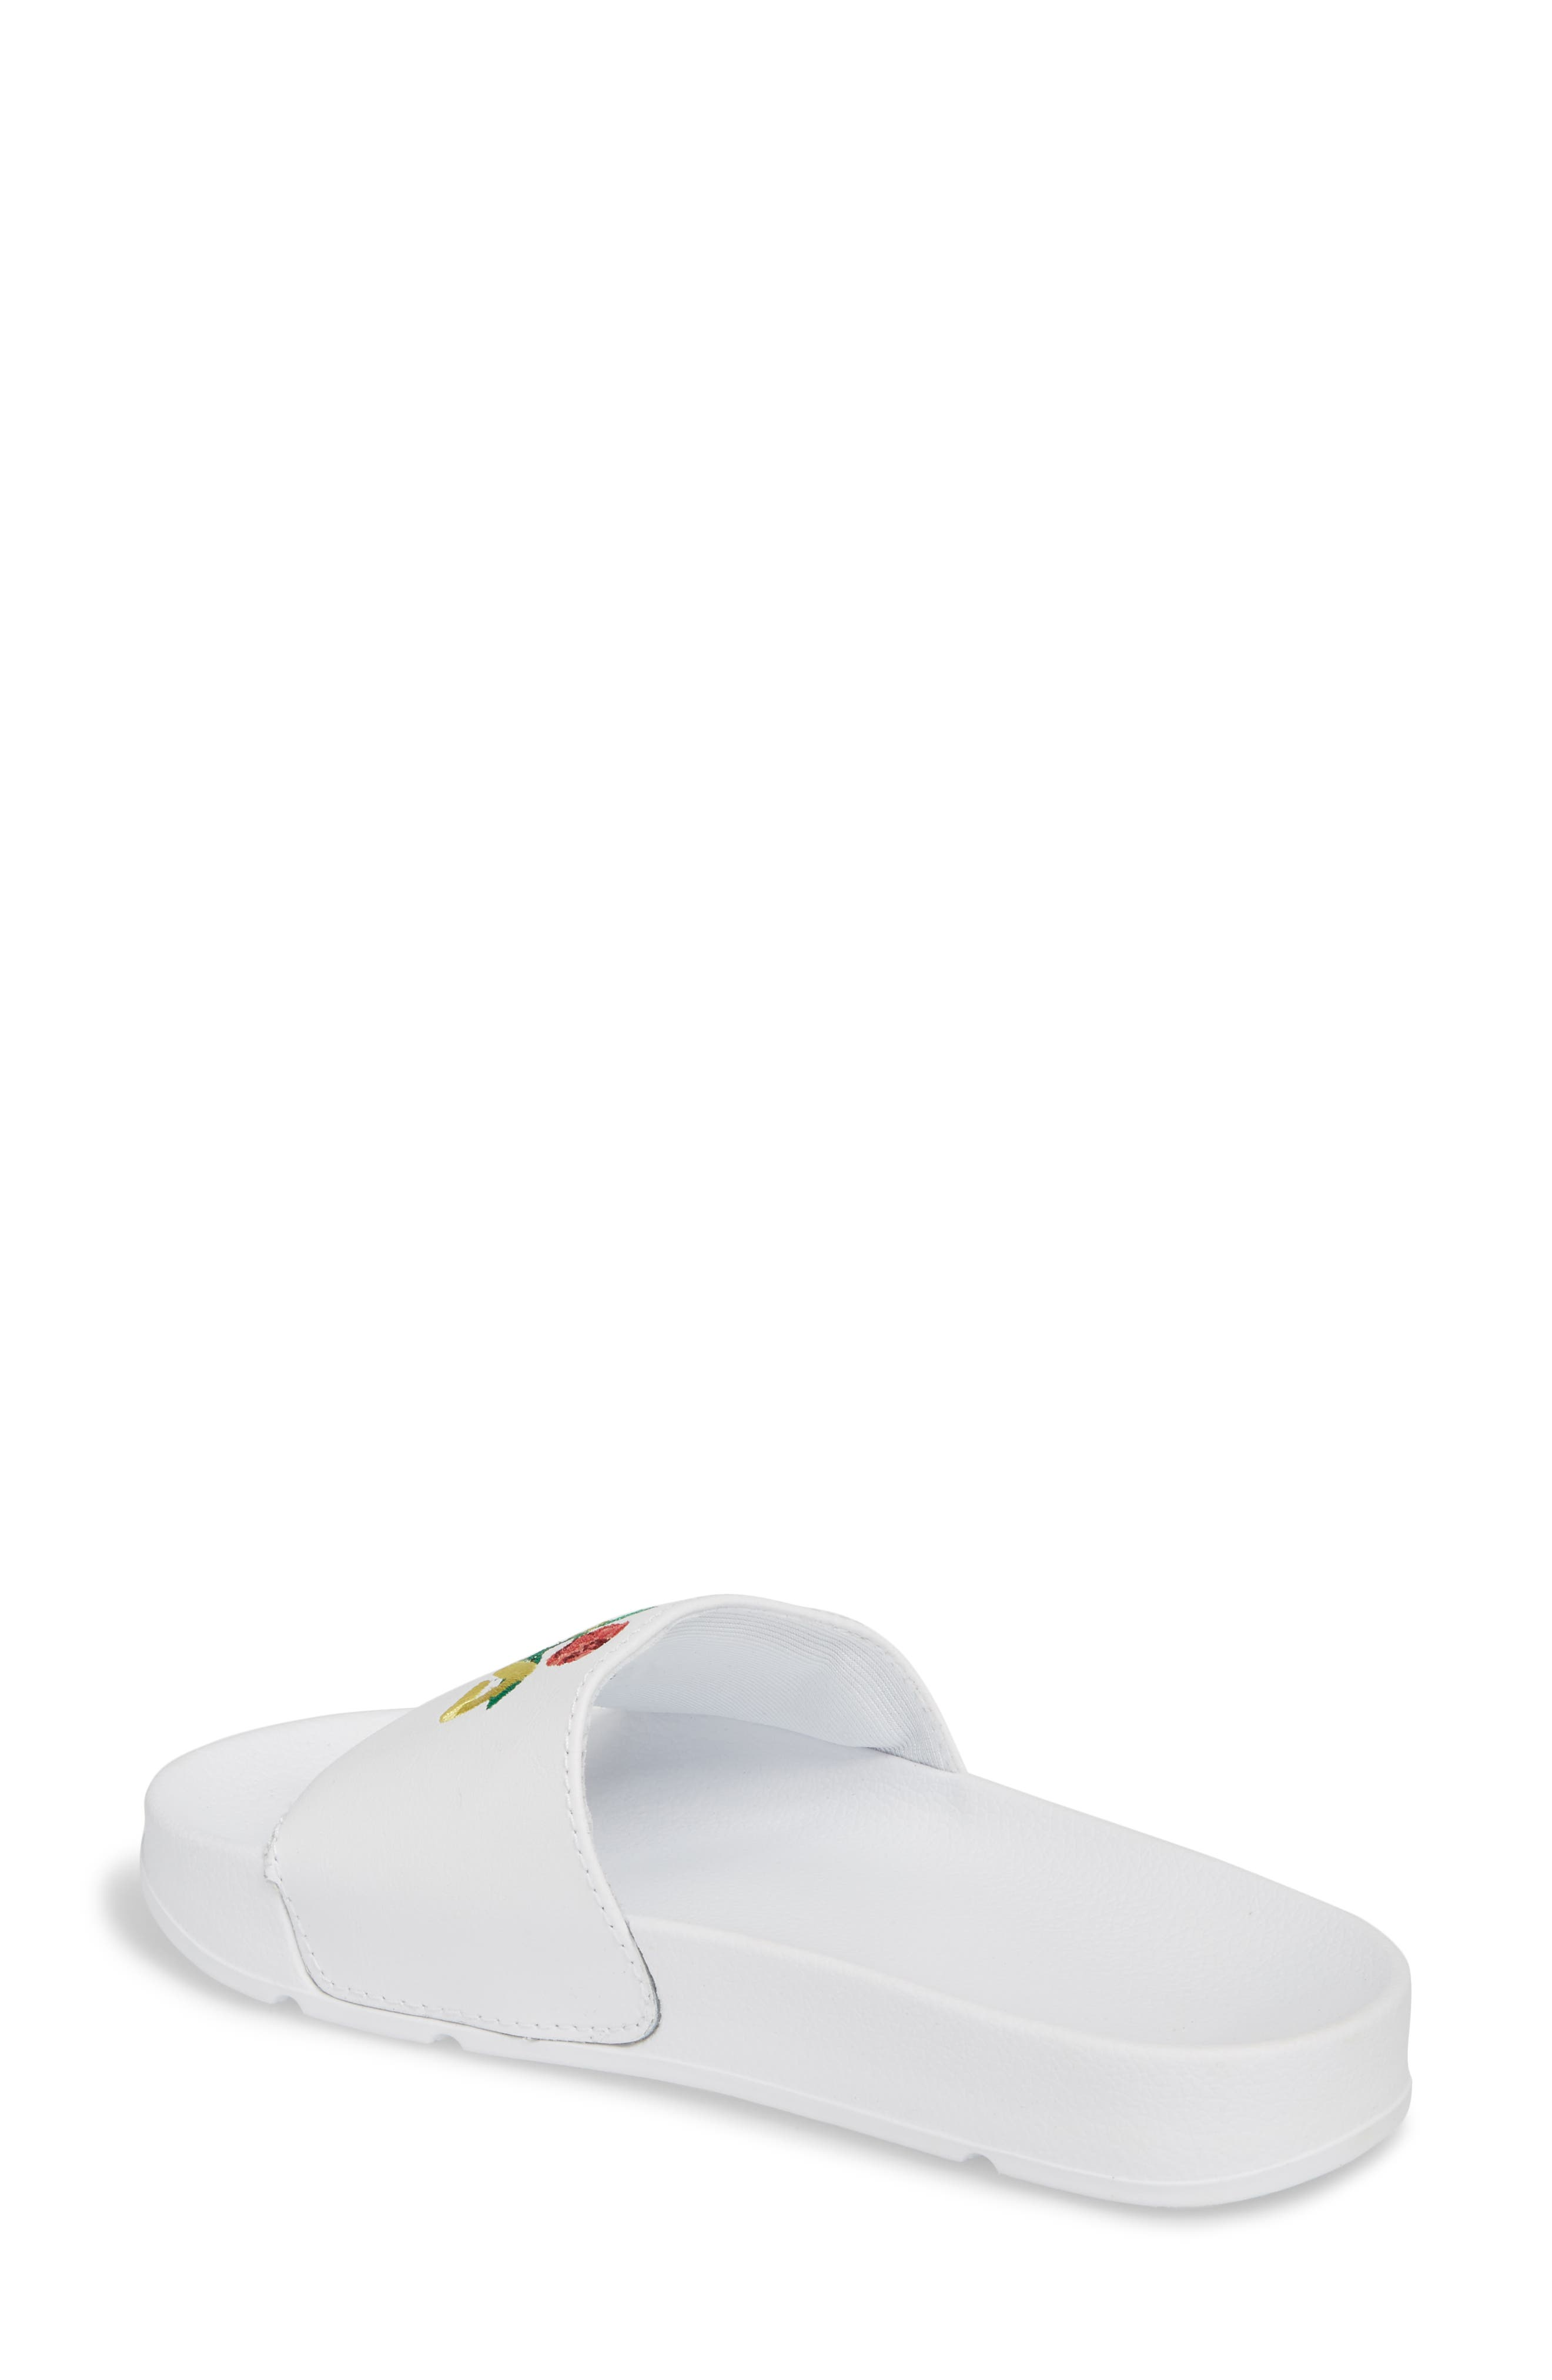 Embroidered Slide Sandal,                             Alternate thumbnail 2, color,                             WHT/ DFLO/ JYBN